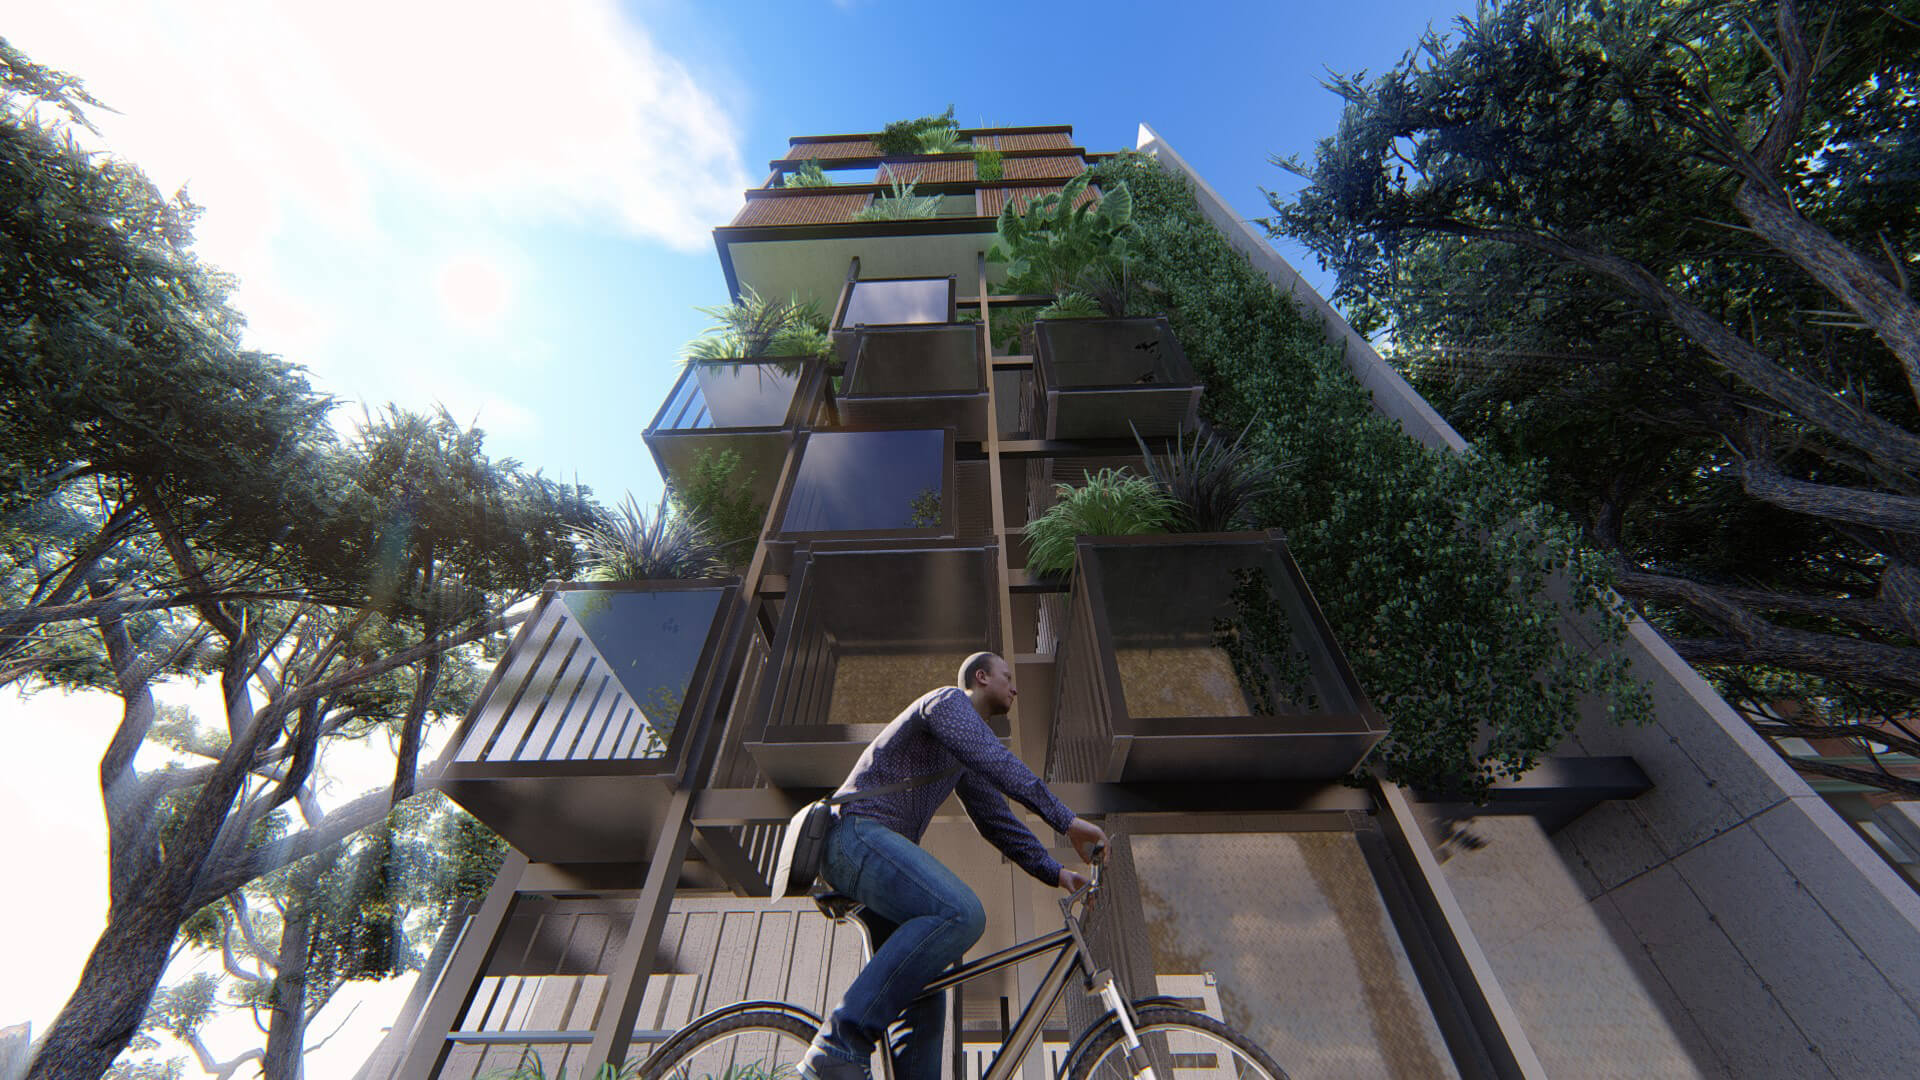 The Residential Tower in Hanoi that uses shipping containers to create varied spaces | Residential Tower in Hanoi | Studio VDGA | STIRworld